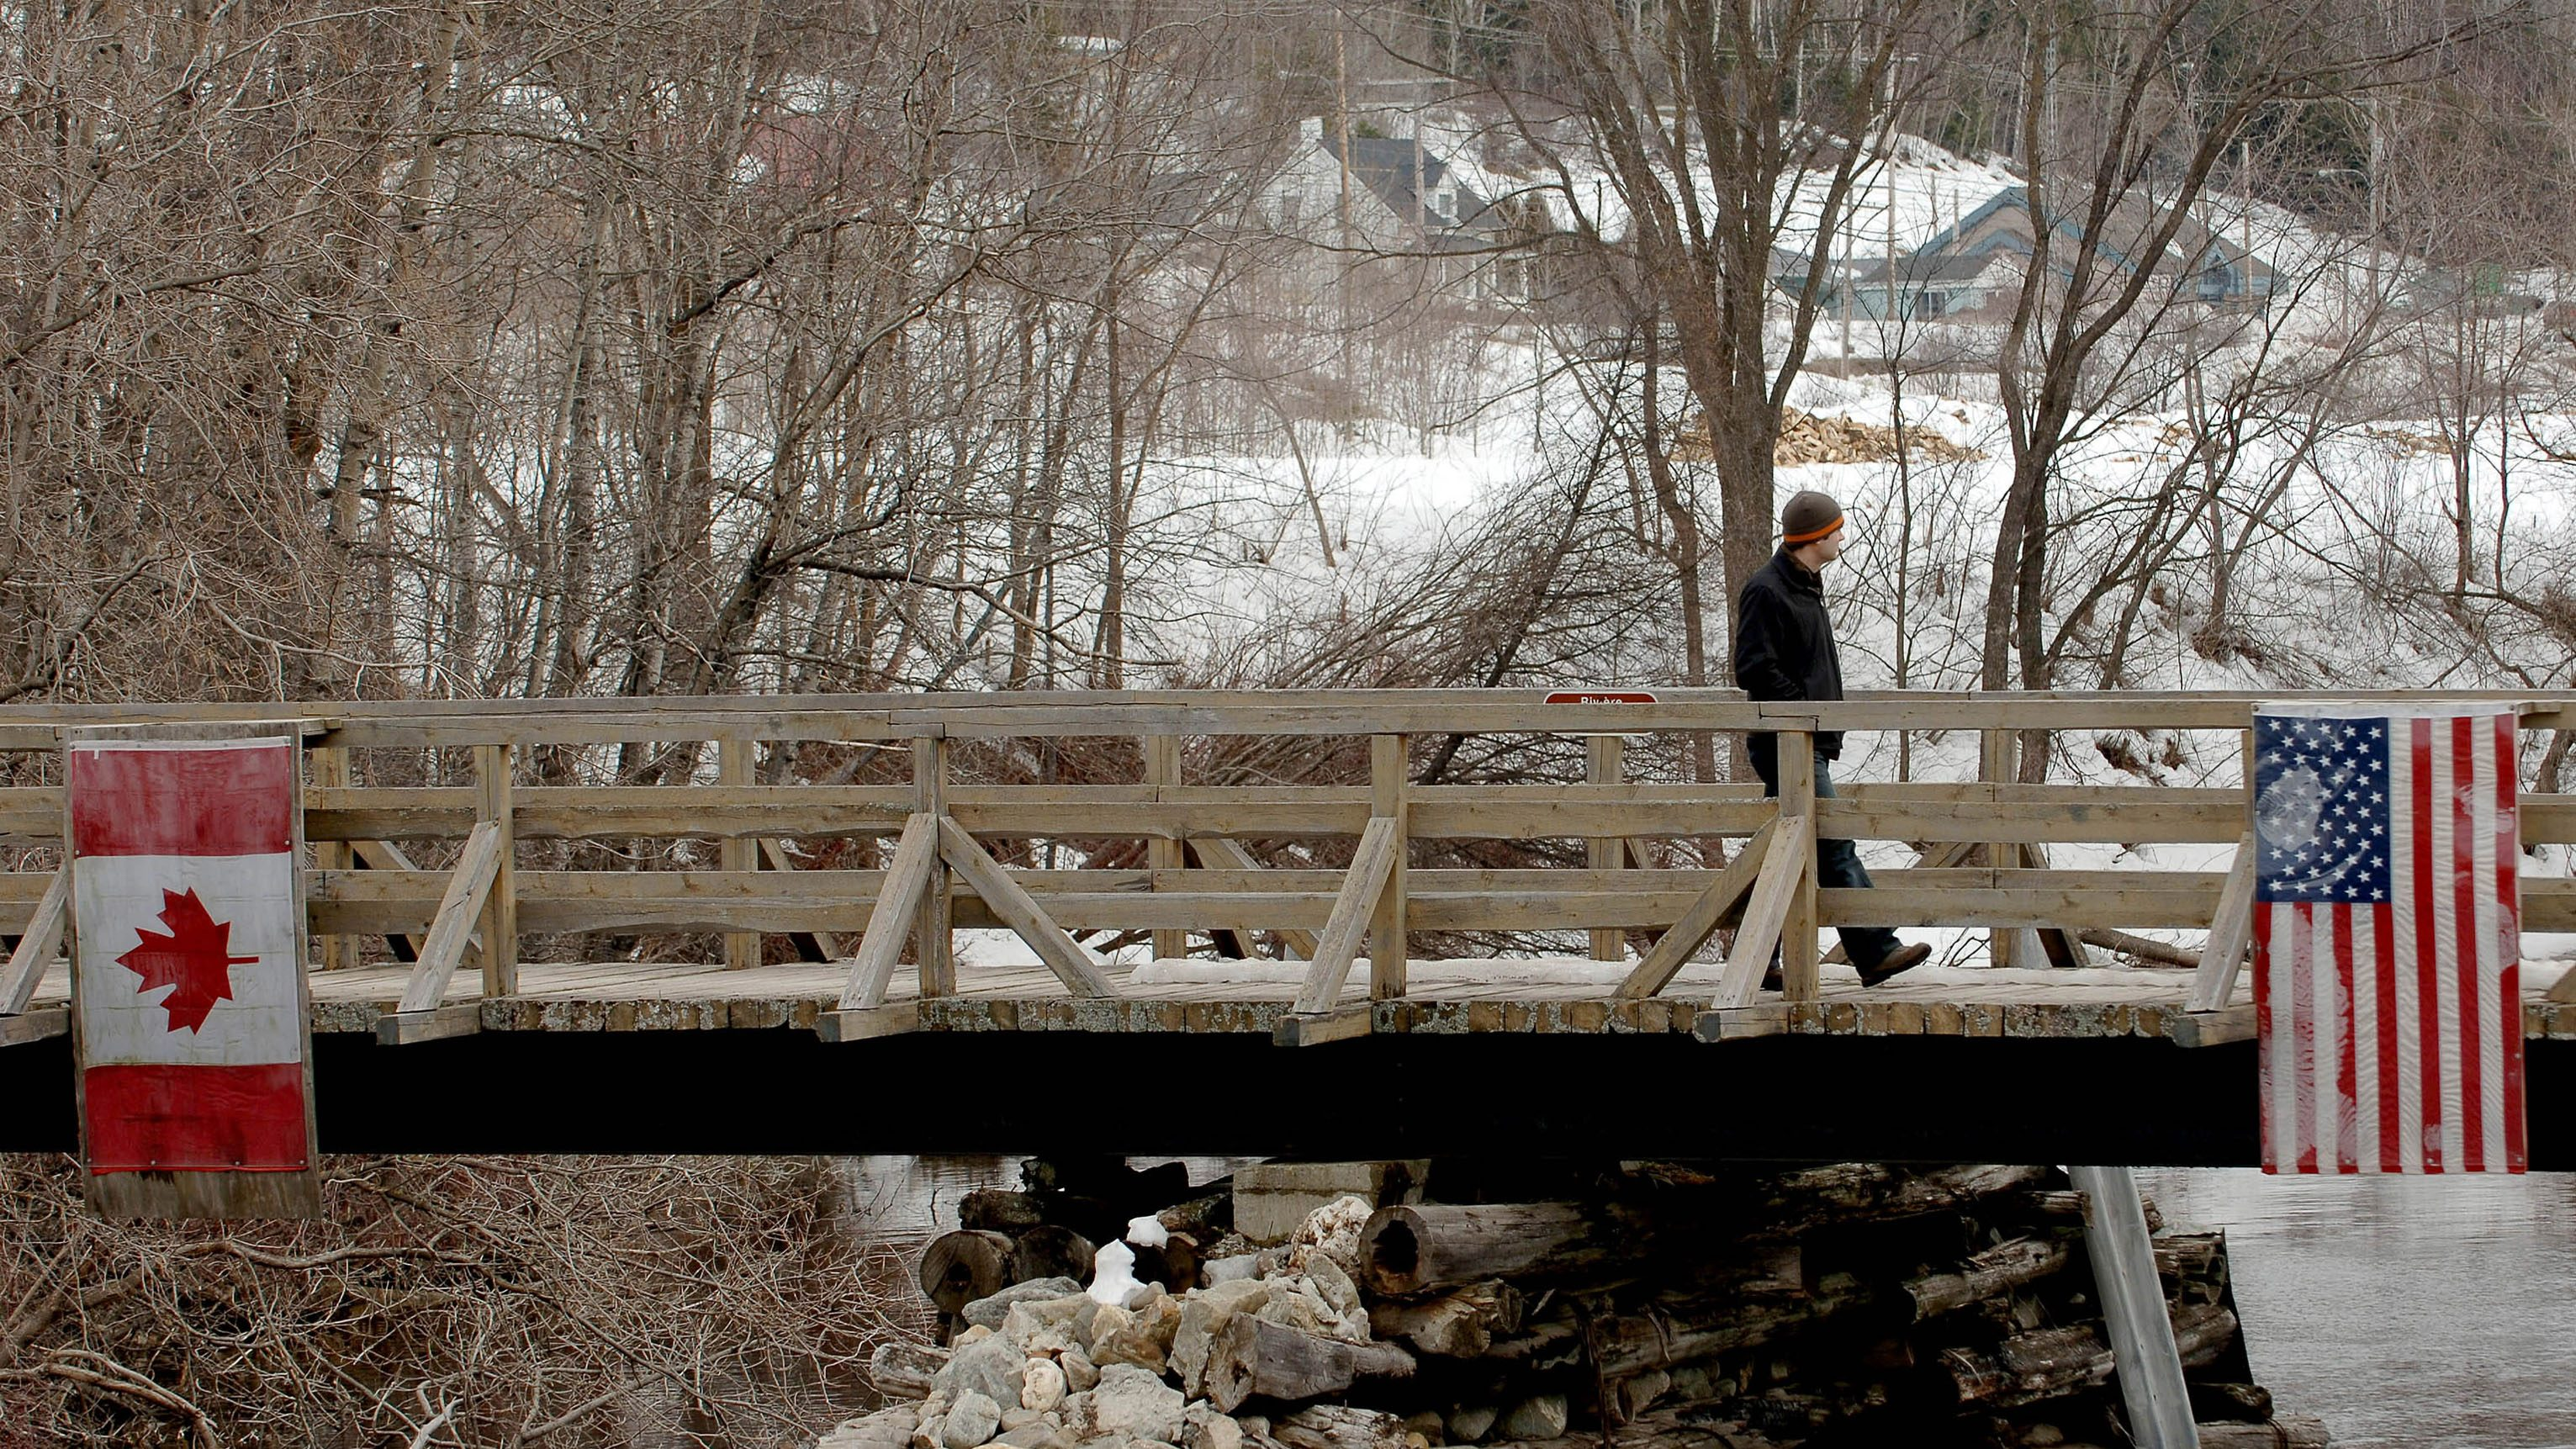 A pedestrian crosses into the US from Canada